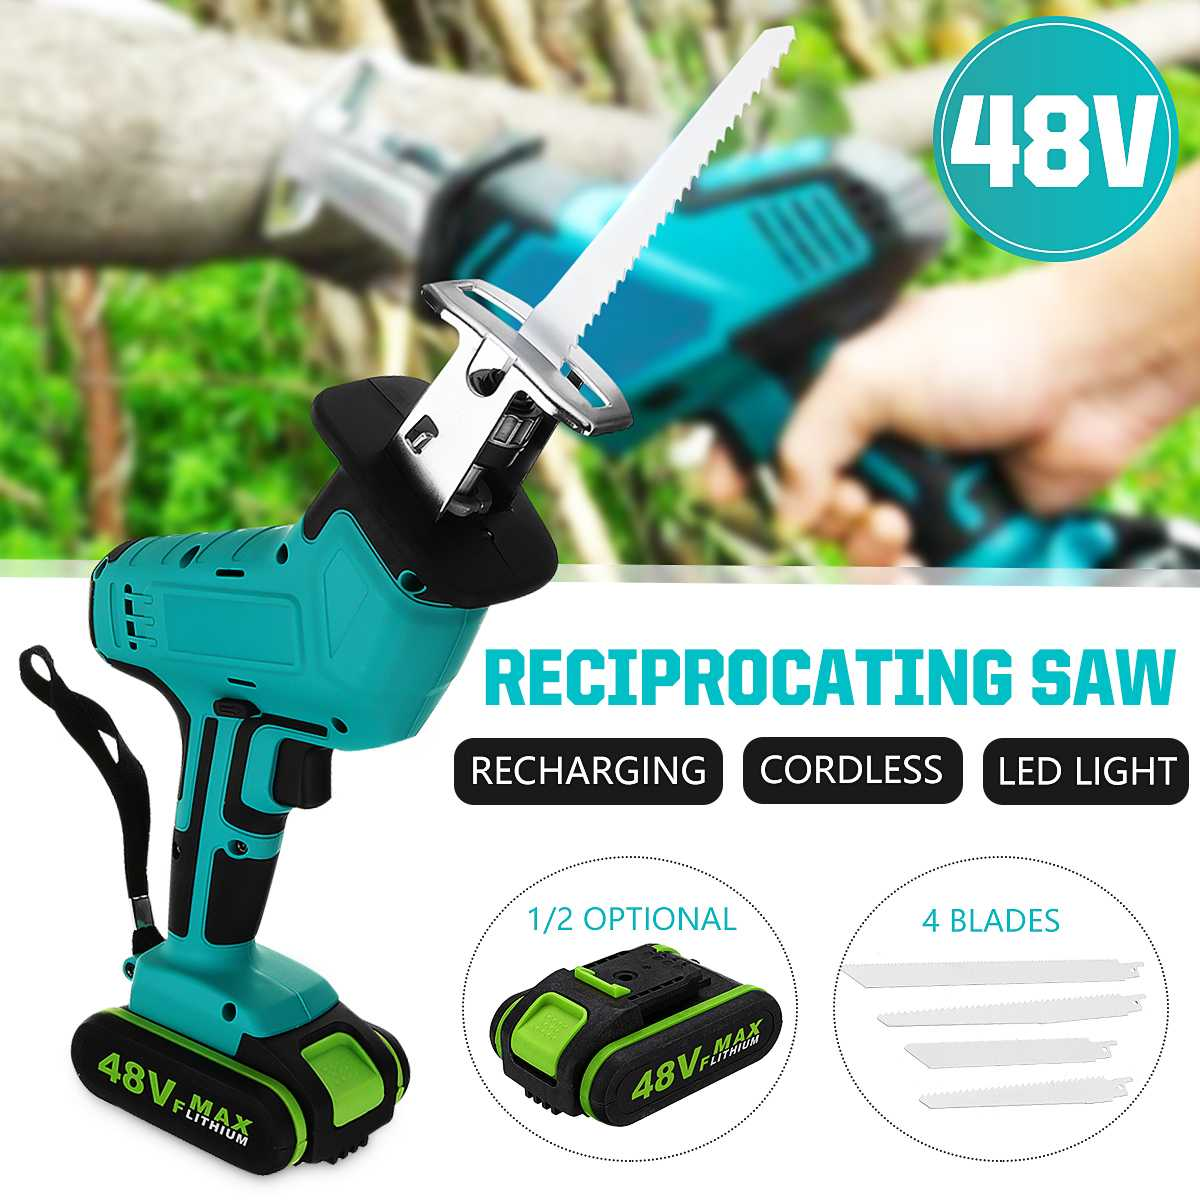 48V Battery Cordless Reciprocating Saw + 4 Saw Blade Metal Cutting Wood Tool Portable Woodworking Cutters with 1/2 Battery